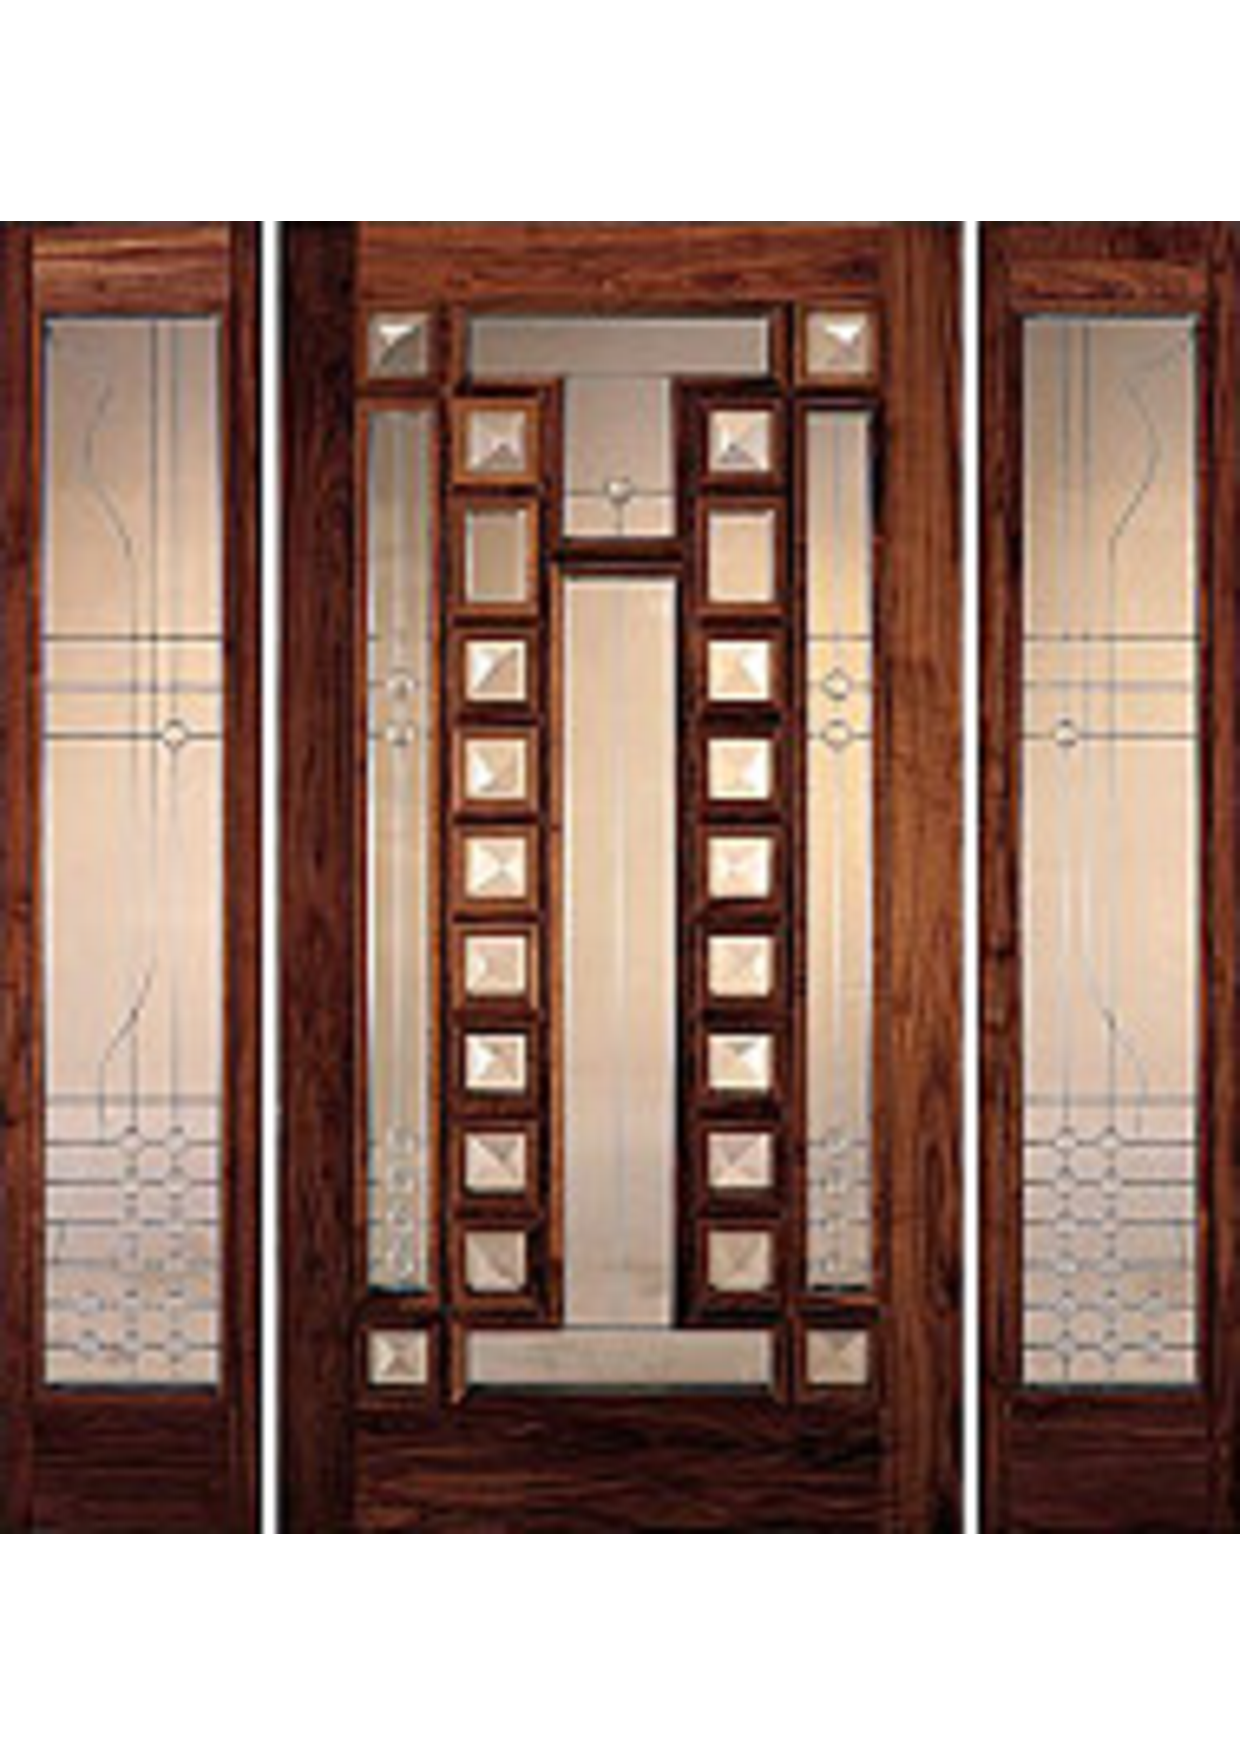 Living room door designs in india nakicphotography for Unique interior door ideas